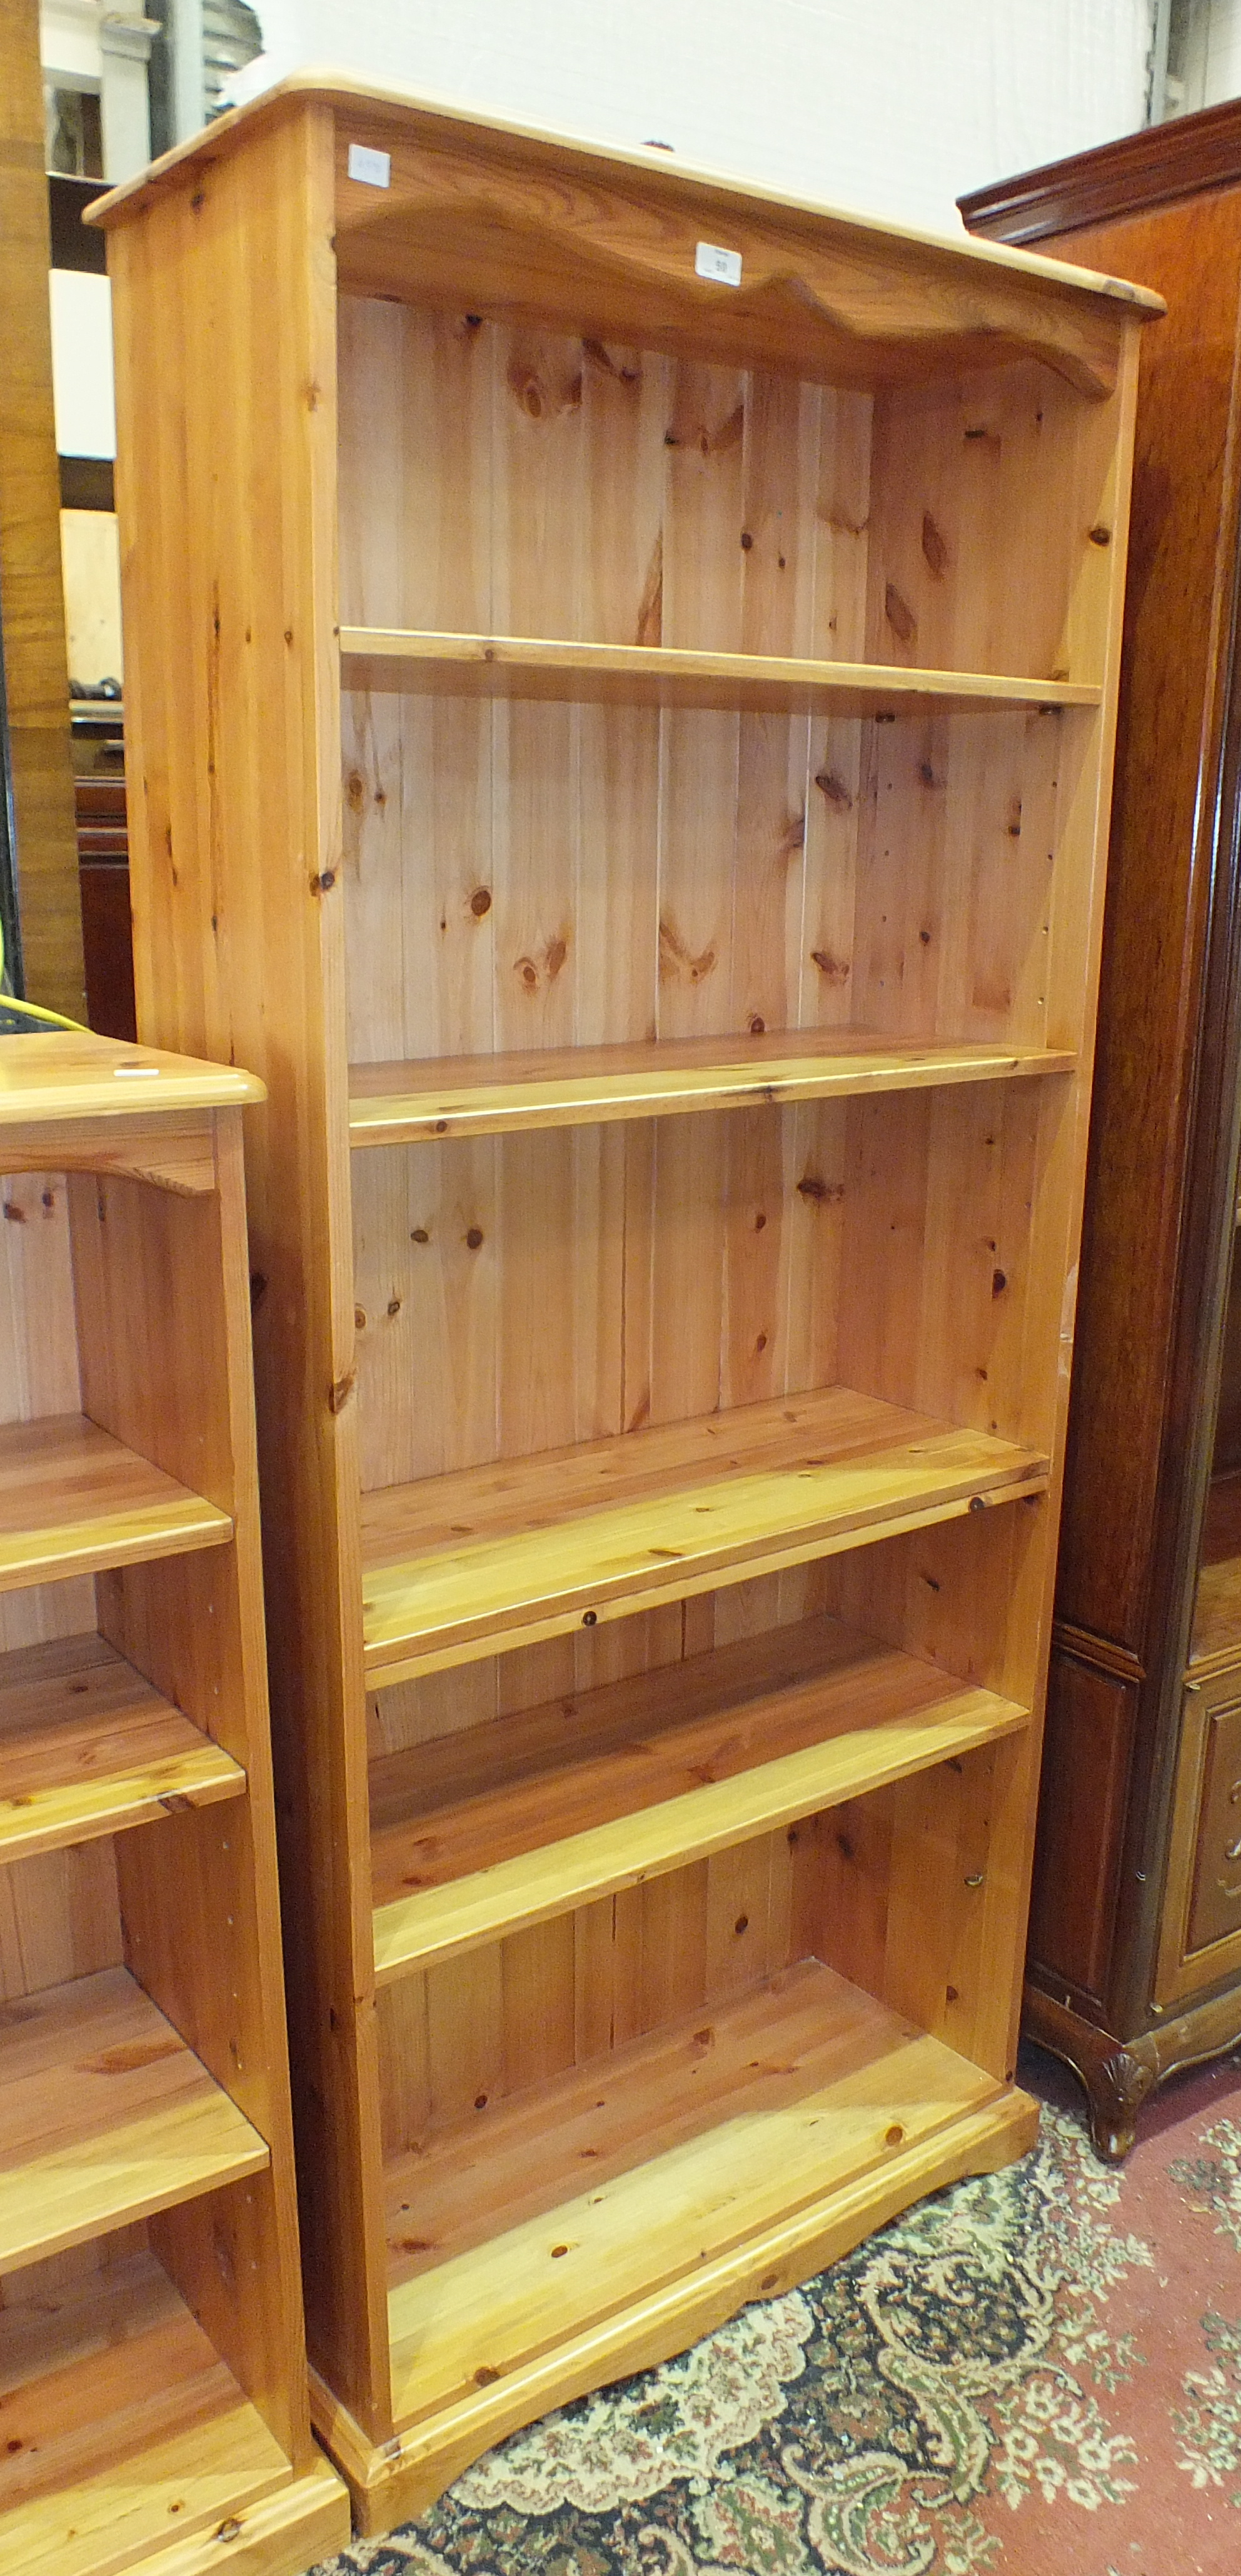 A set of modern pine open shelves, 80cm wide, 183cm high and a similar smaller set, 80cm wide, 120cm